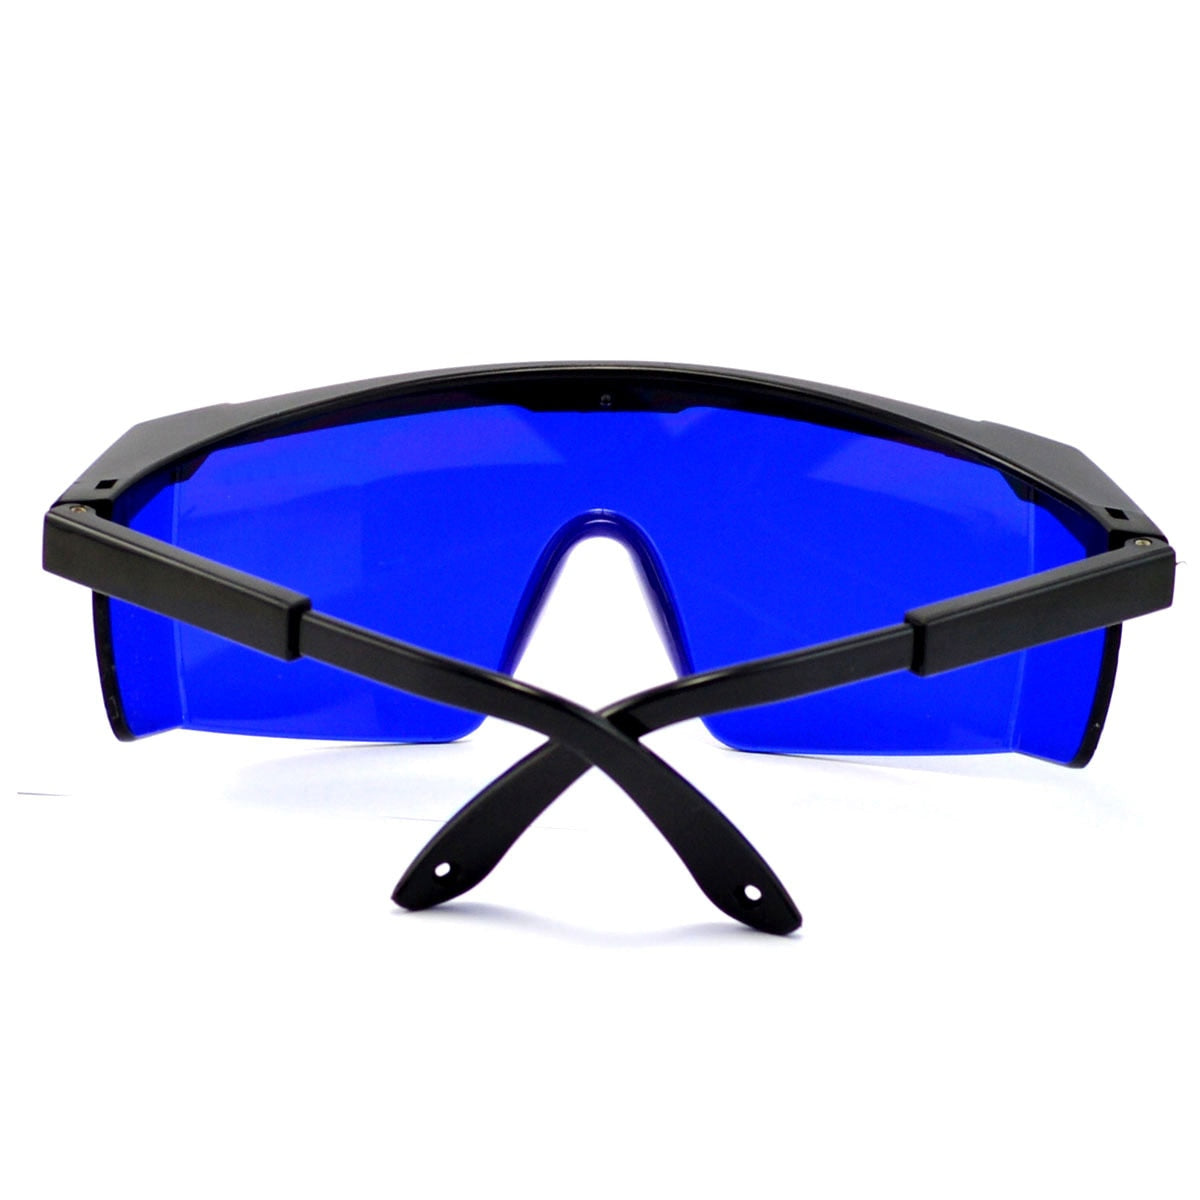 Professional Golf Ball Finder Glasses